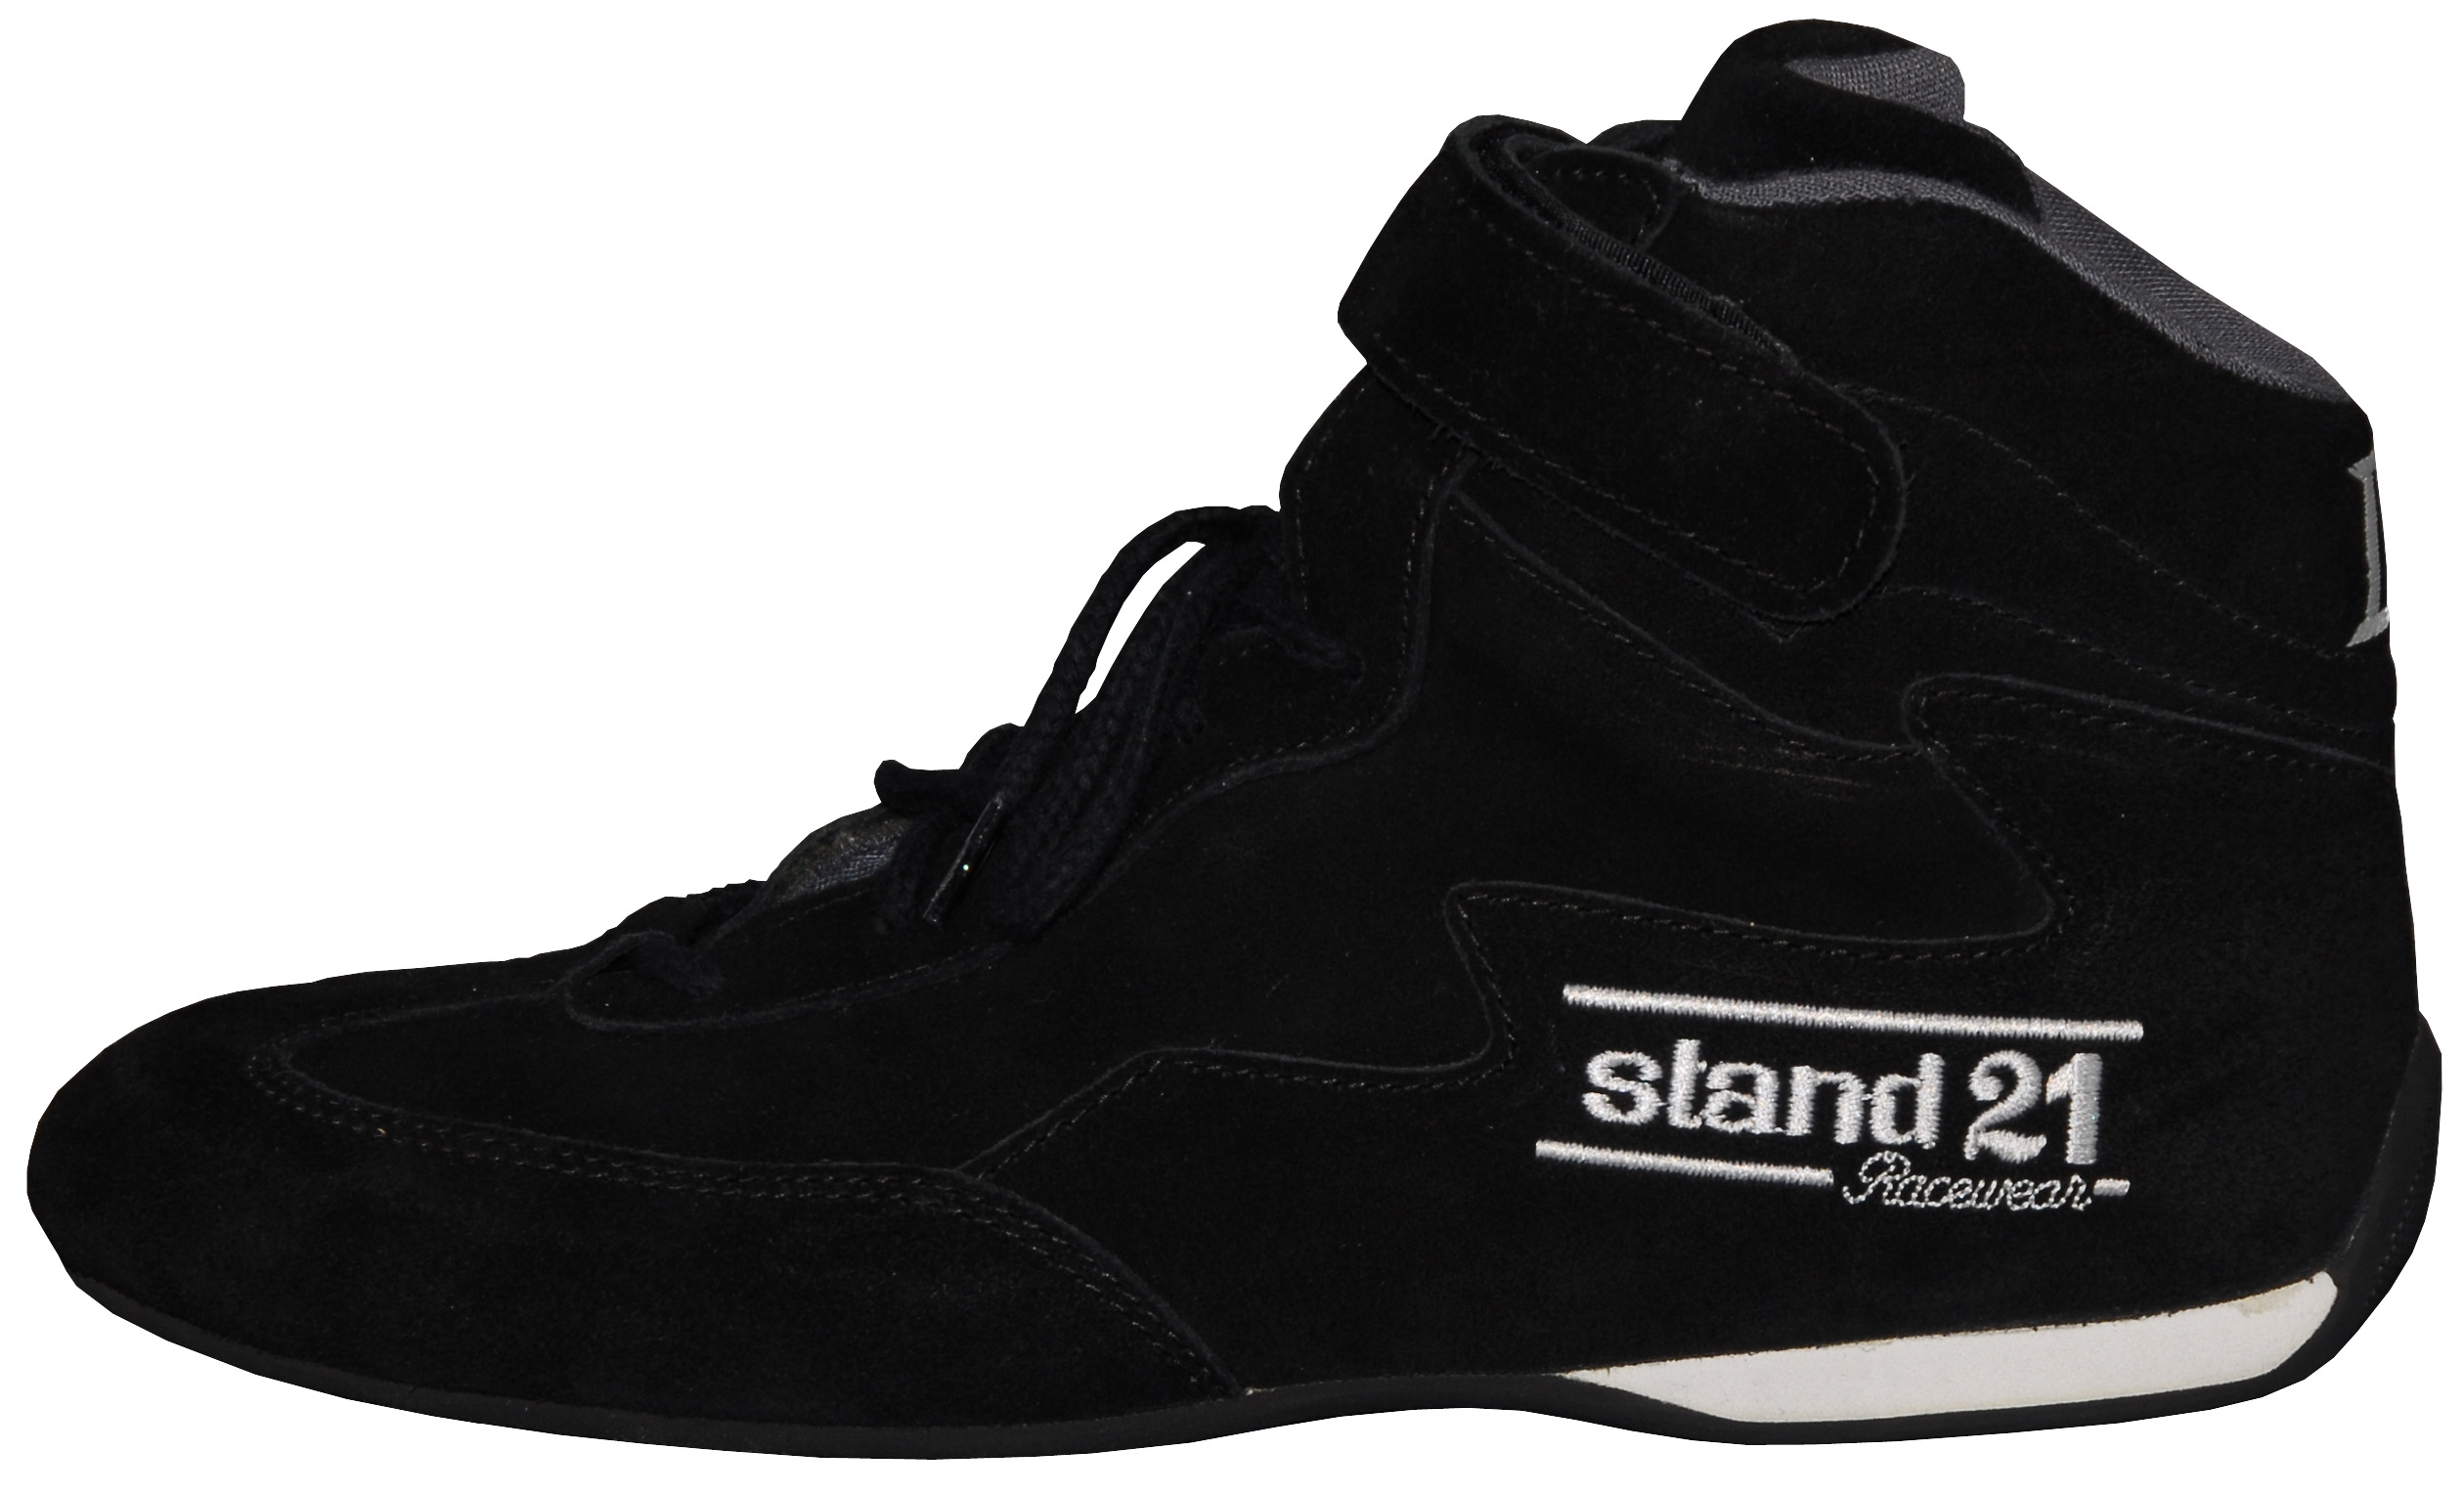 Stock black Daytona II boots